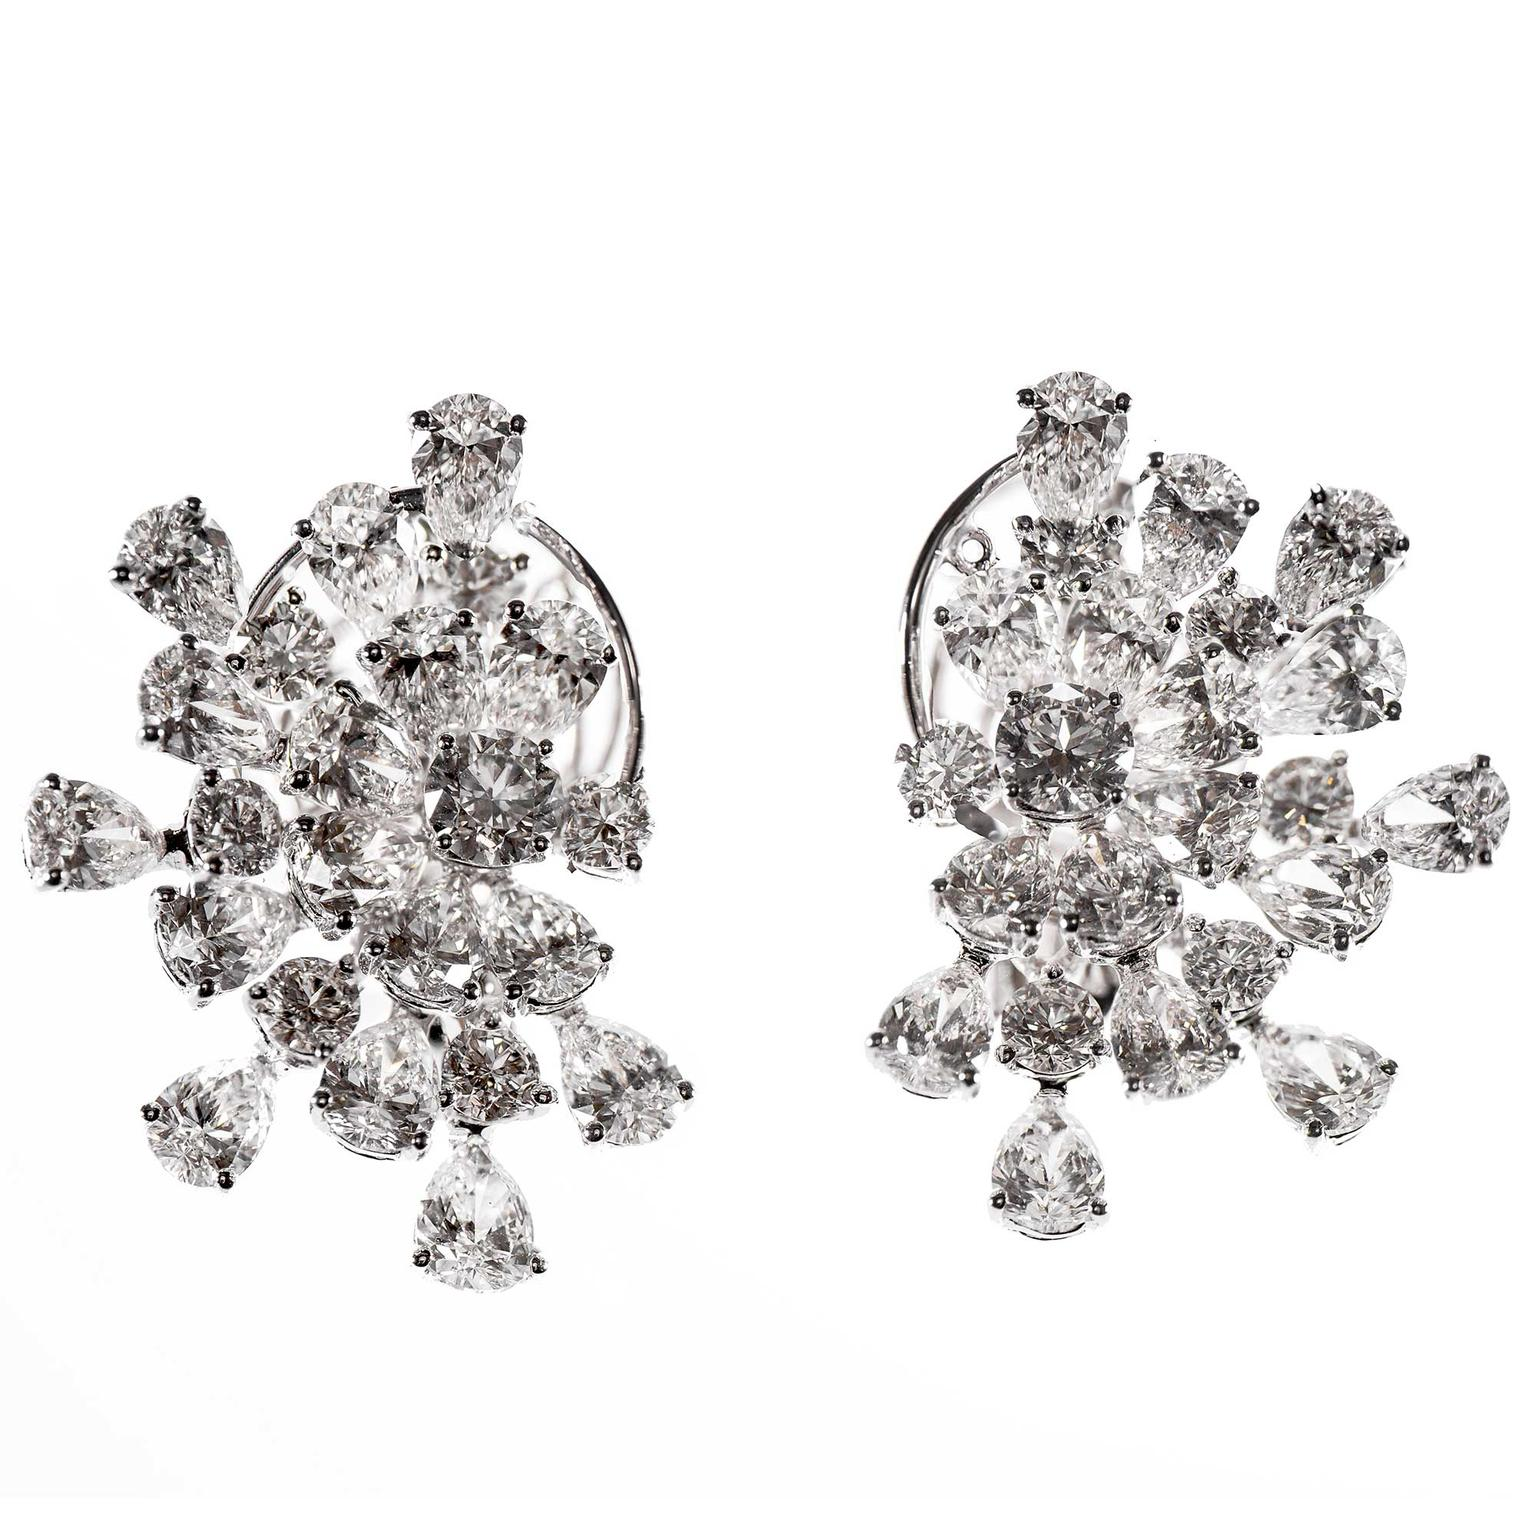 Gismondi Fireworks diamond earrings